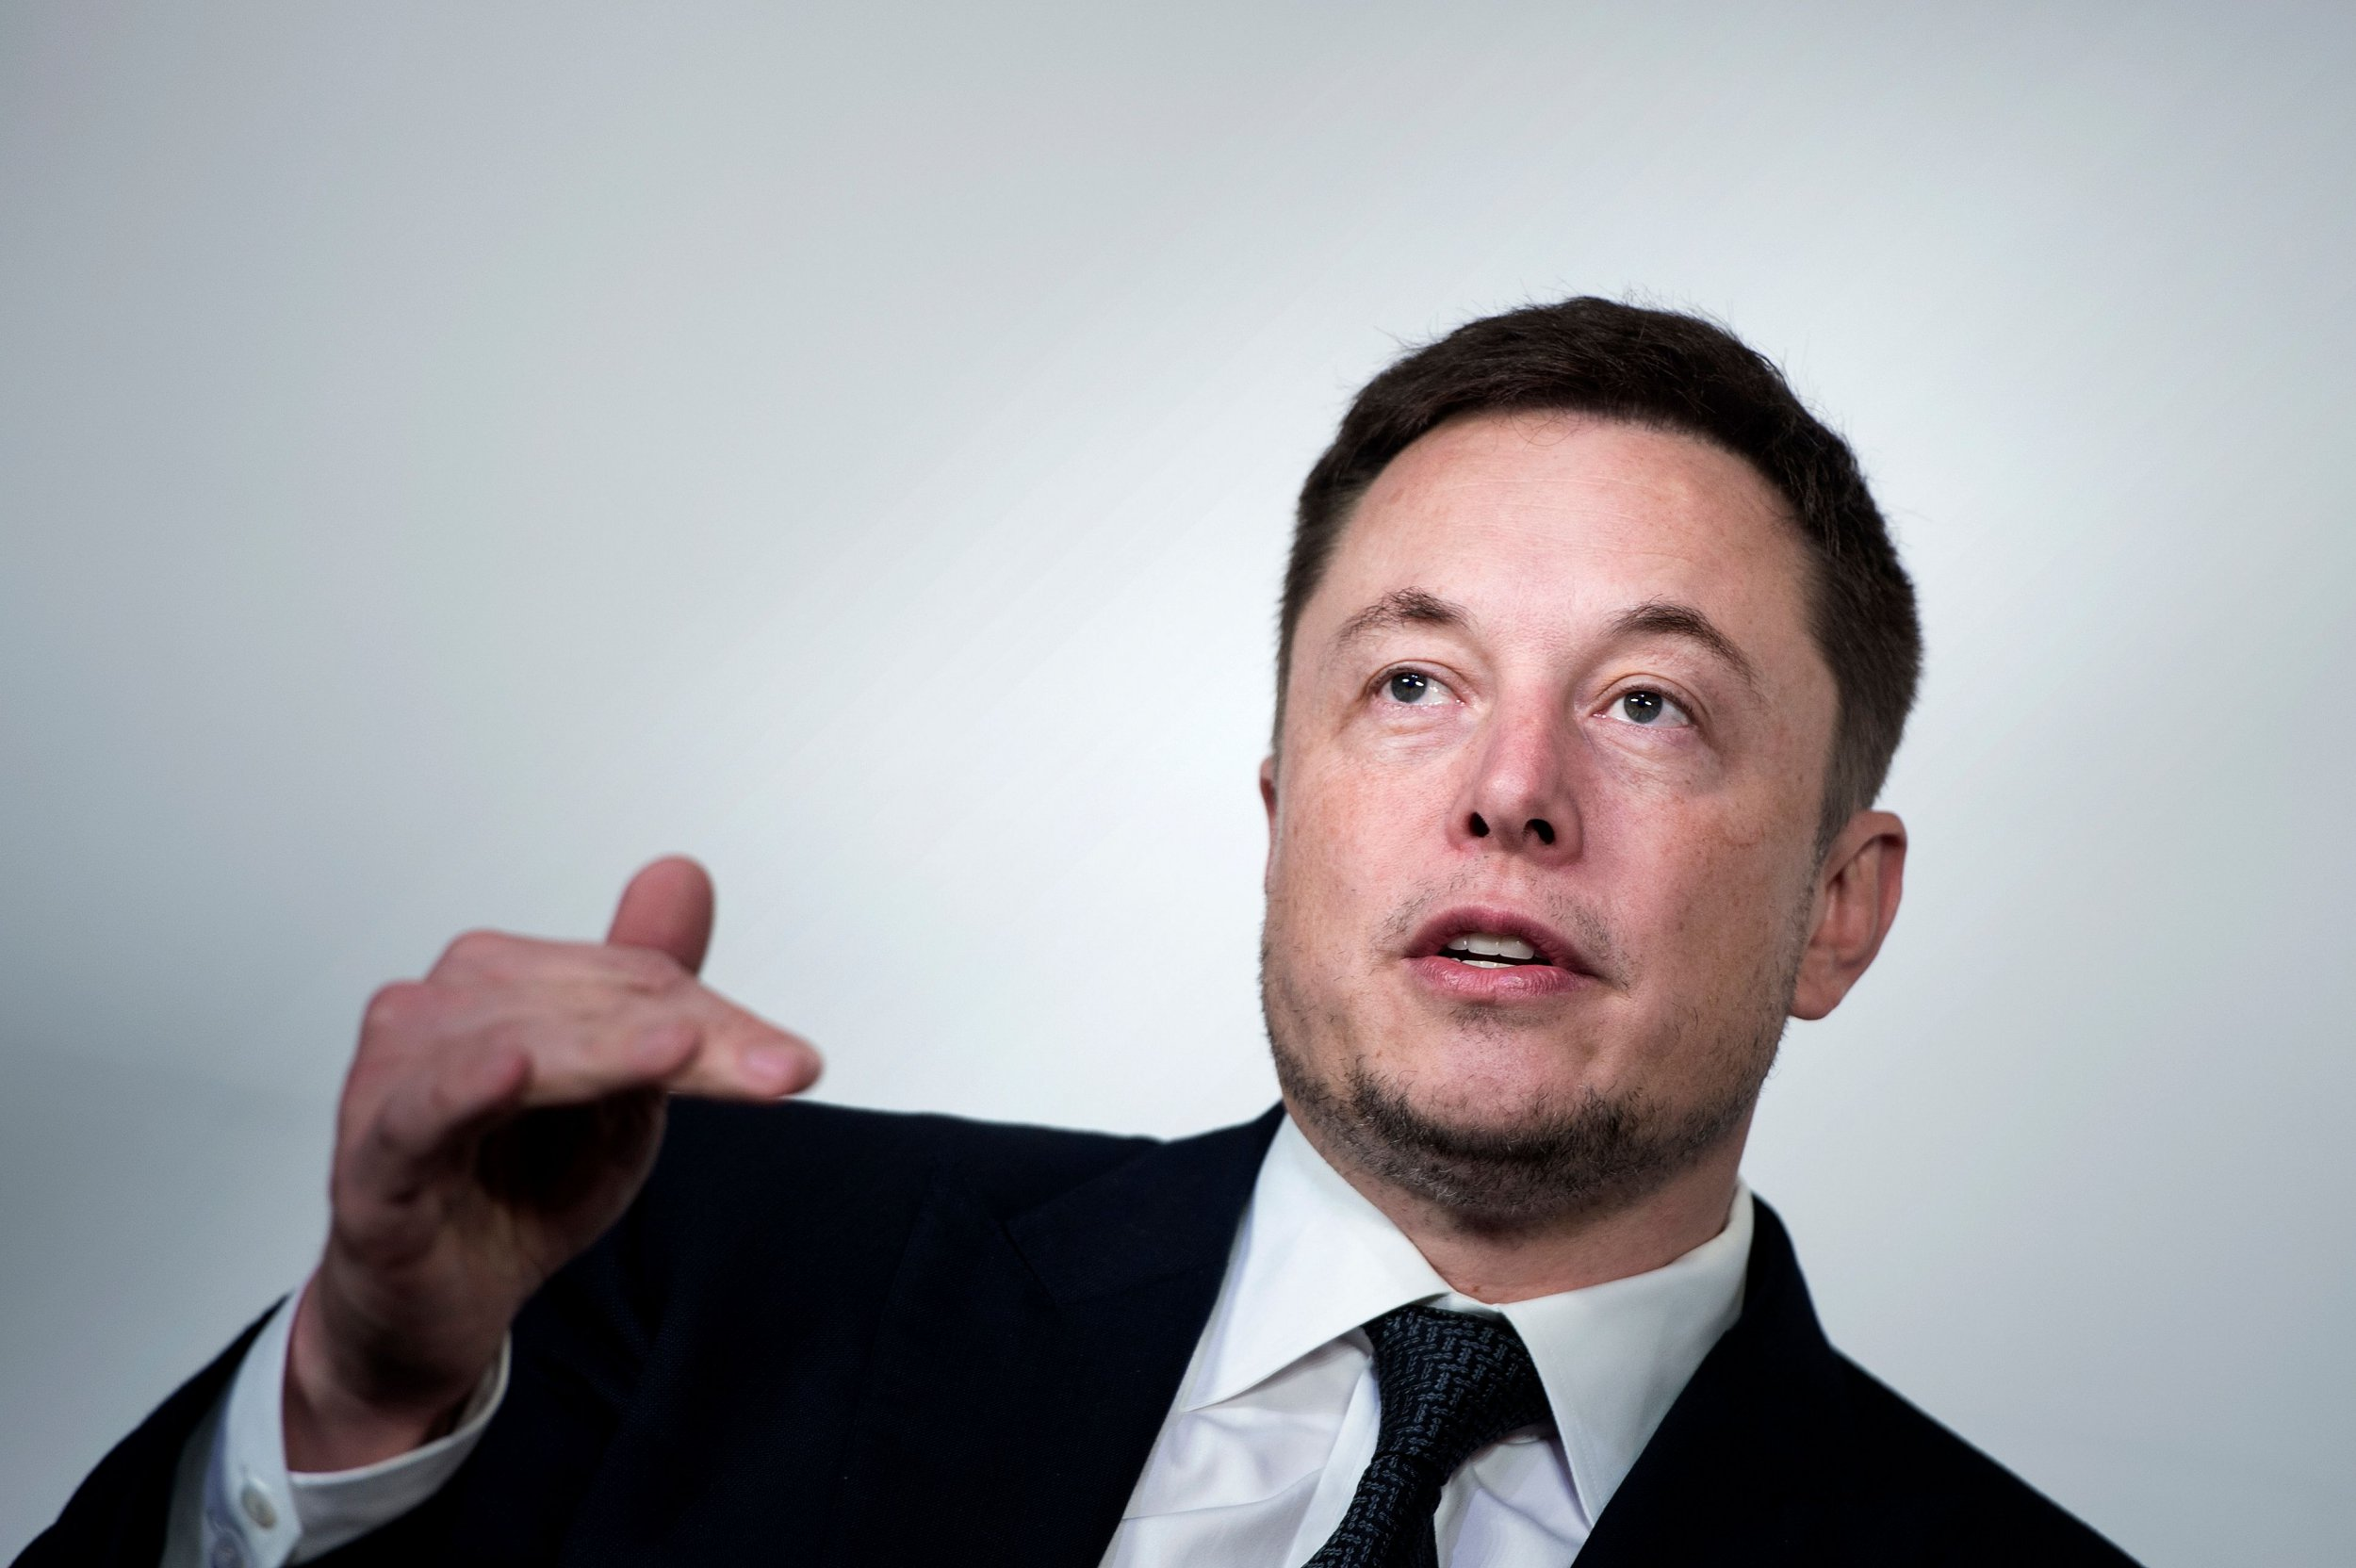 (FILES) In this file photo taken on July 19, 2017, Elon Musk, CEO of SpaceX and Tesla, speaks during the International Space Station Research and Development Conference at the Omni Shoreham Hotel in Washington, DC. American space entrepreneur Elon Musk tweeted that he was in Thailand on Tuesday July 8, 2018, with a prototype mini-sub, at the flooded cave where five members of a youth football team remained trapped. / AFP PHOTO / Brendan Smialowski BRENDAN SMIALOWSKI/AFP/Getty Images